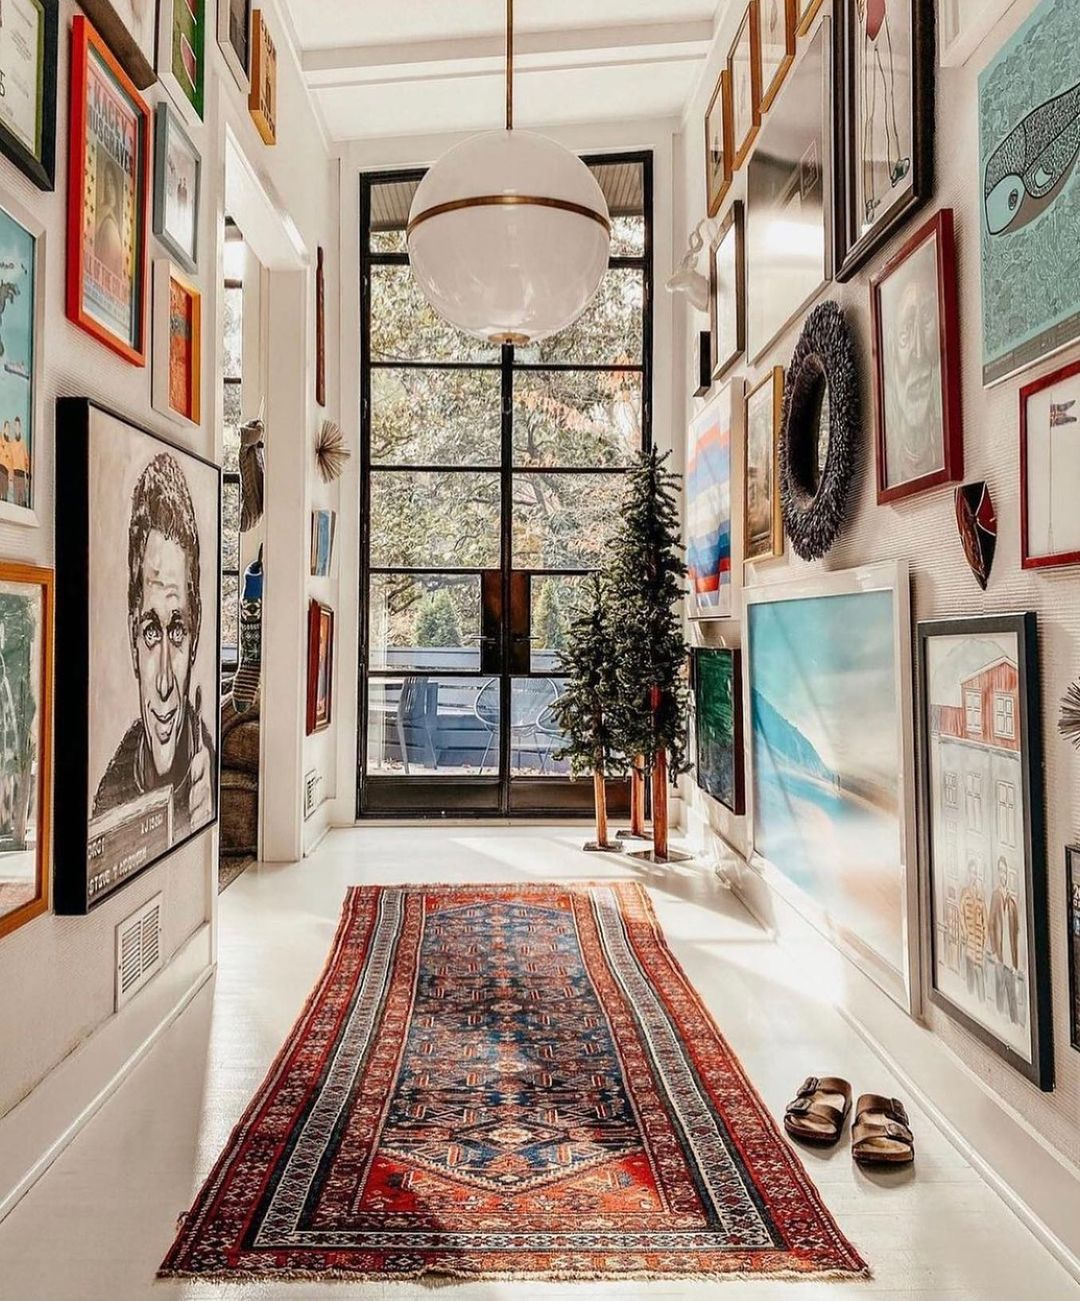 gallery wall ideas-floor to ceiling